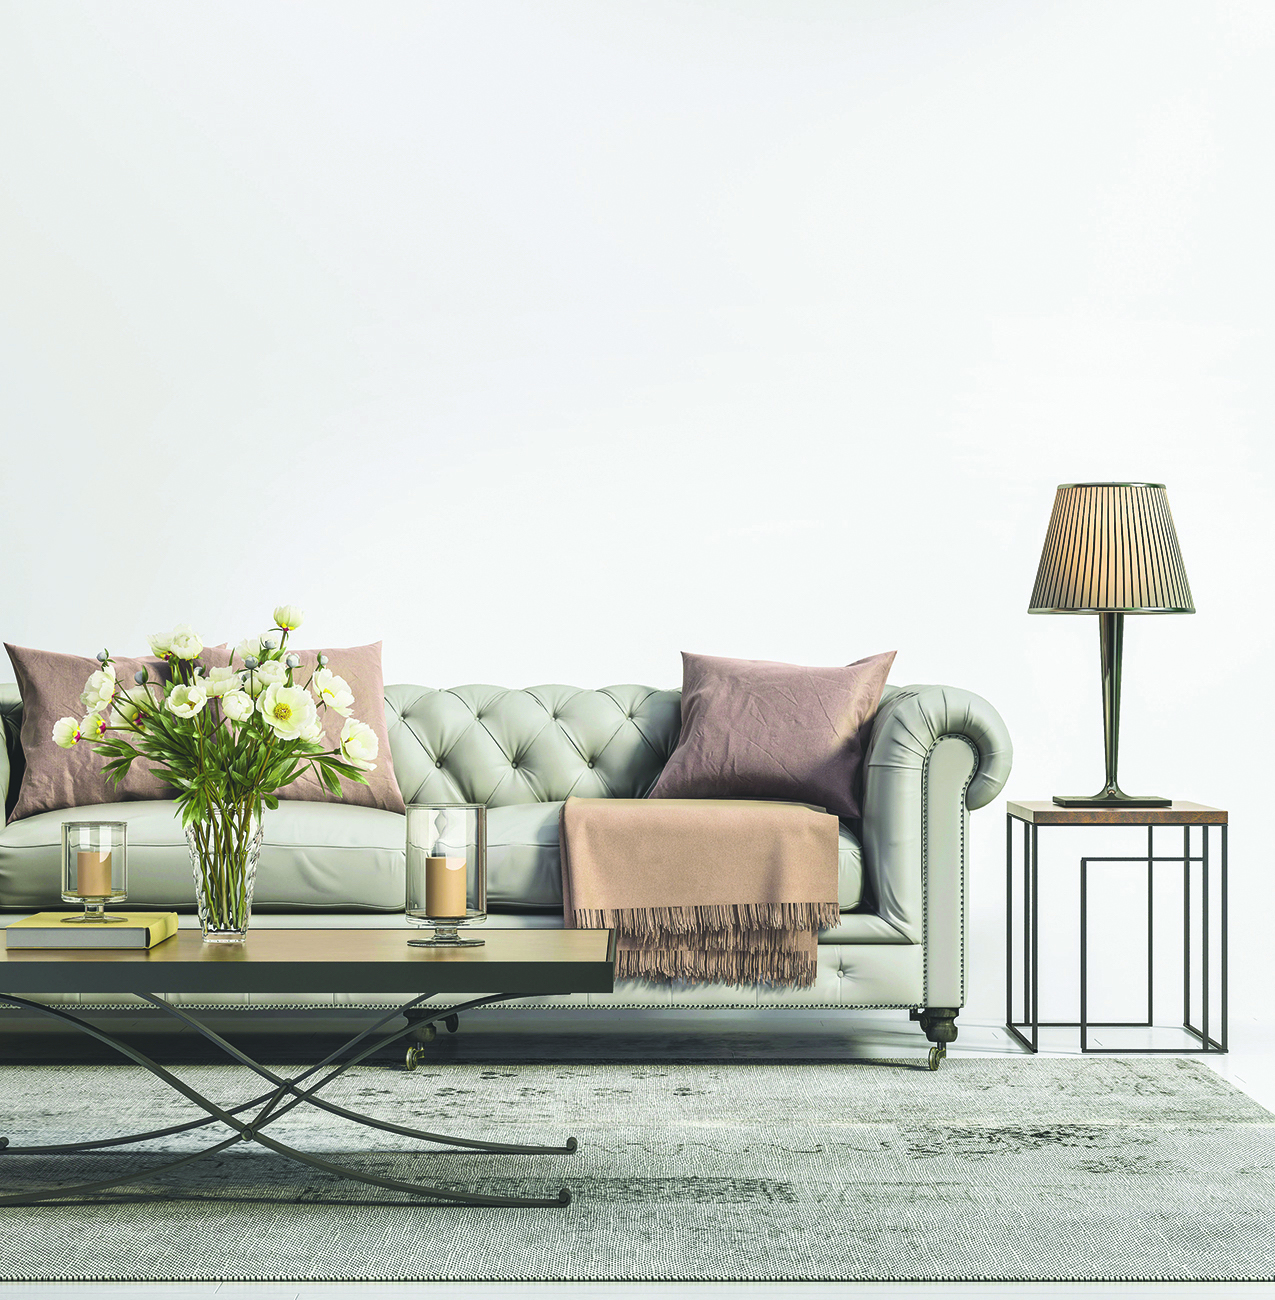 Gray is here to stay in home designs